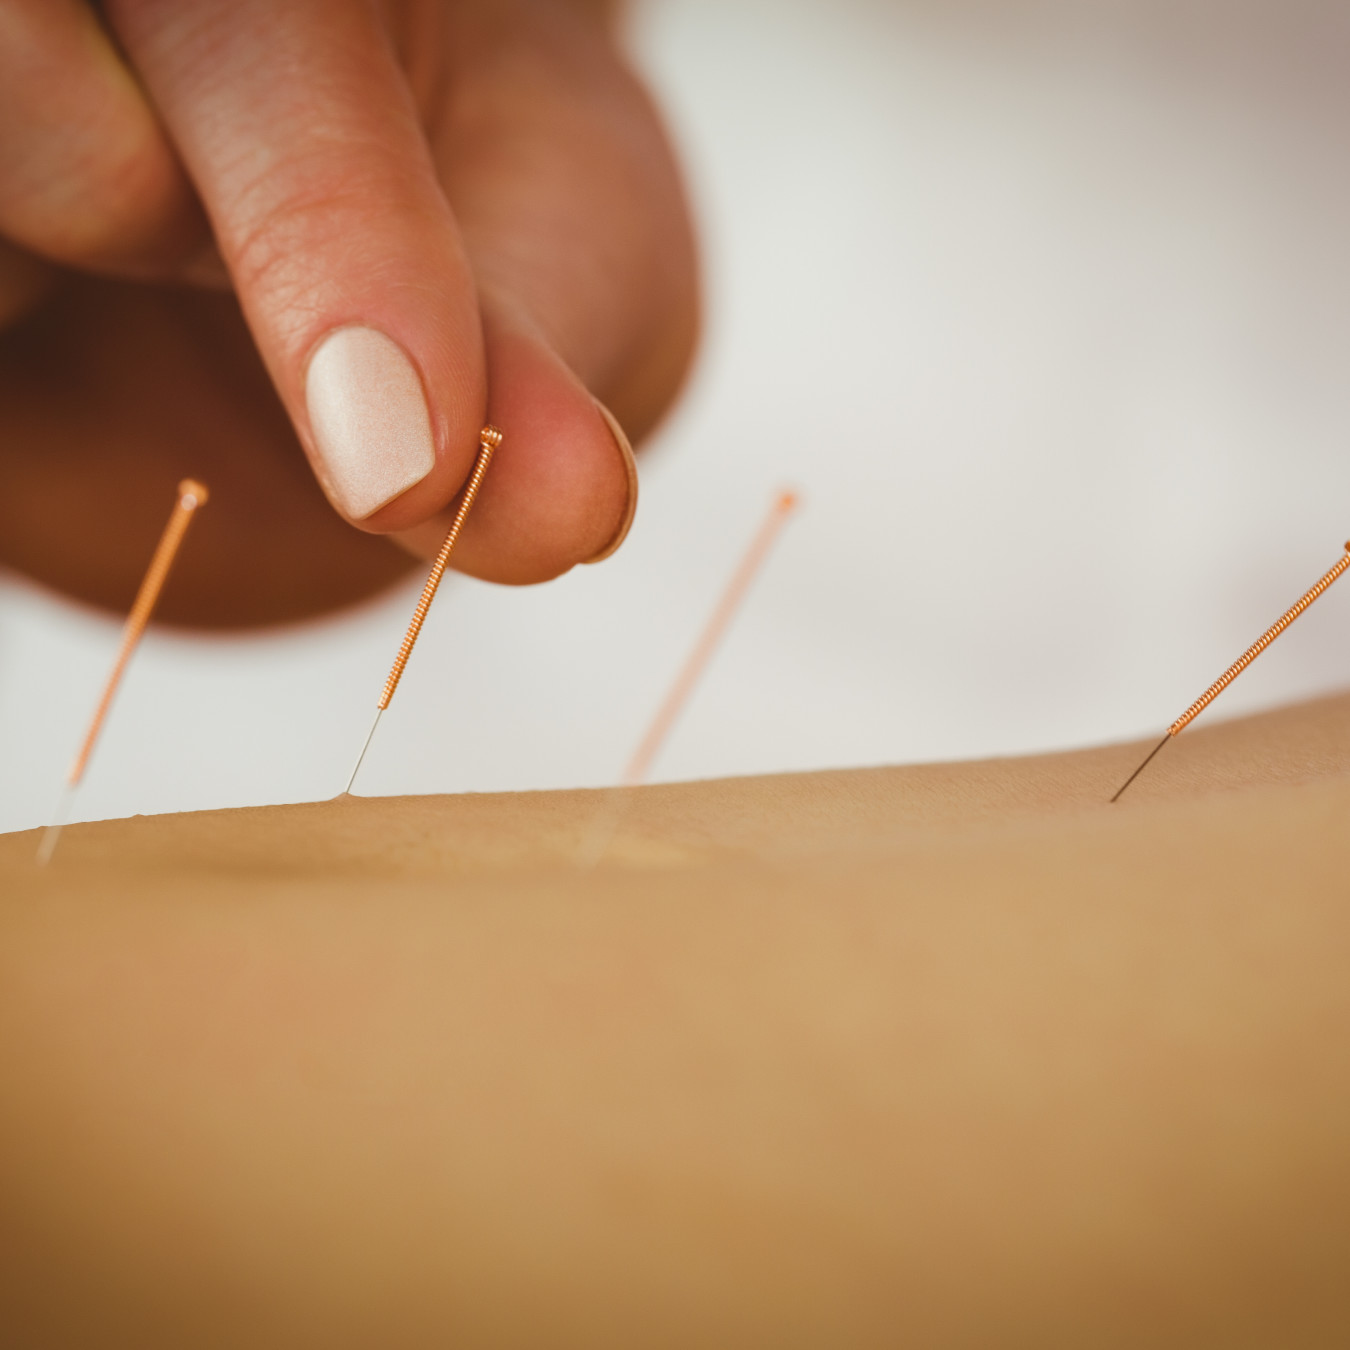 Acupuncture Needle stock